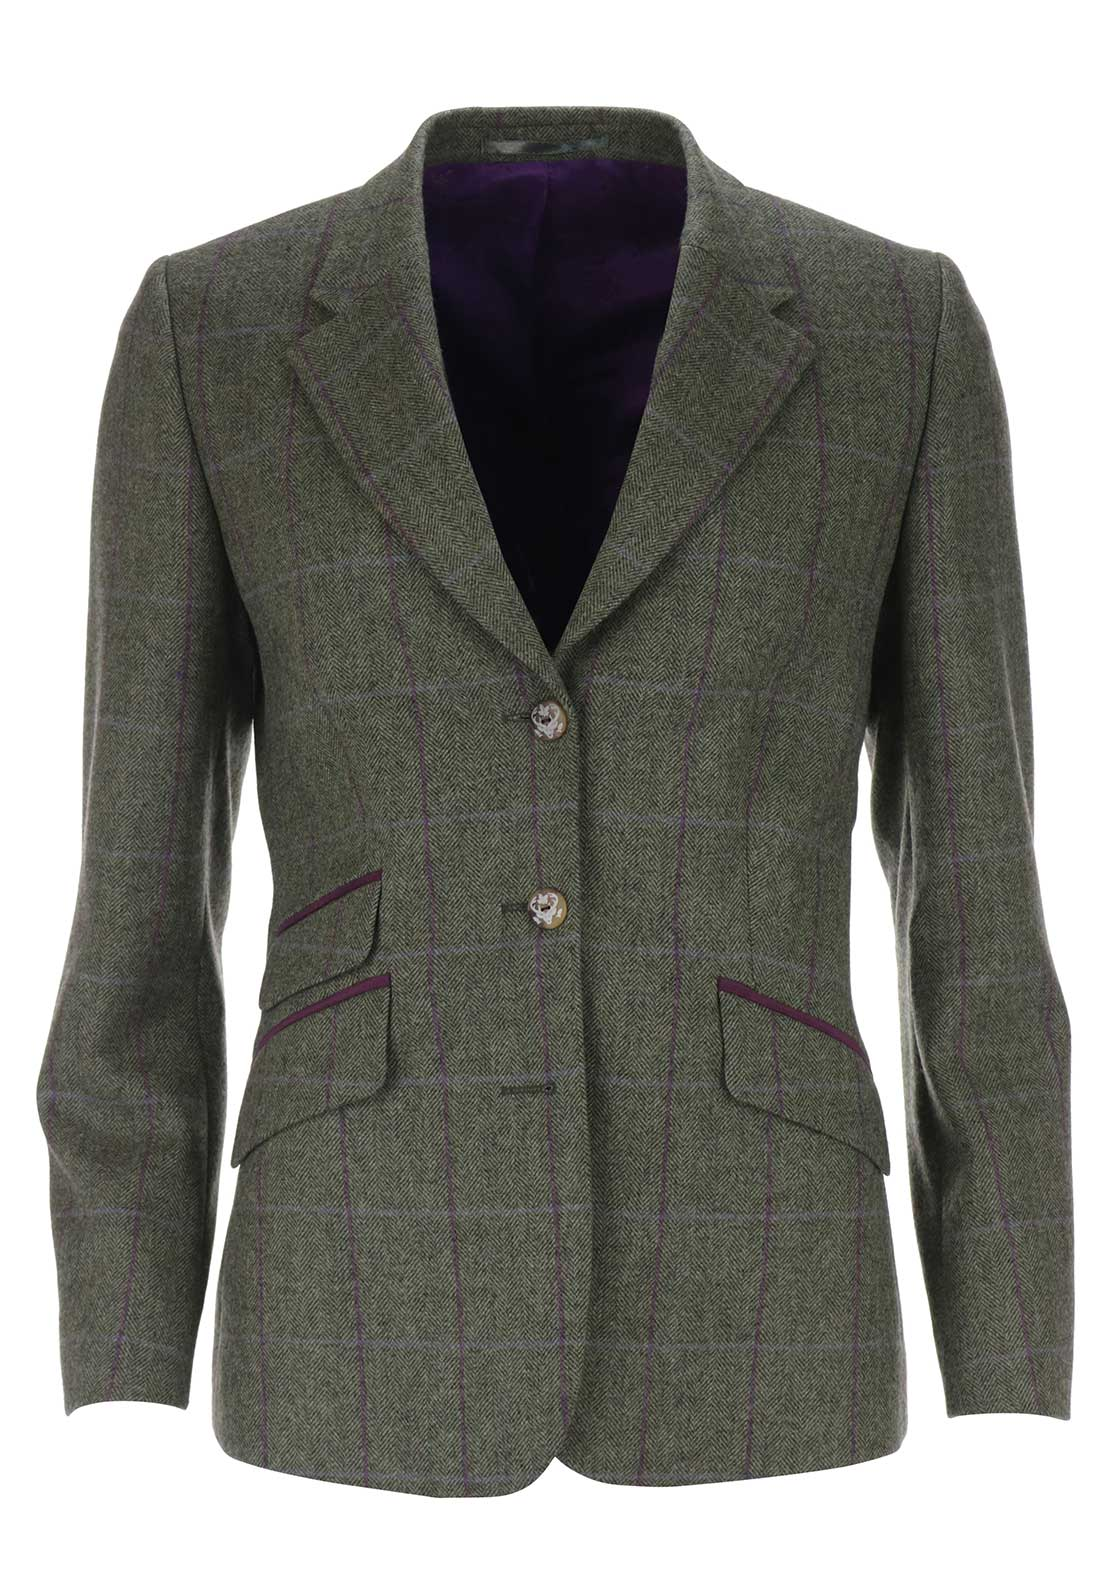 Magee 1866 Womens Cece Tweed Jacket, Green